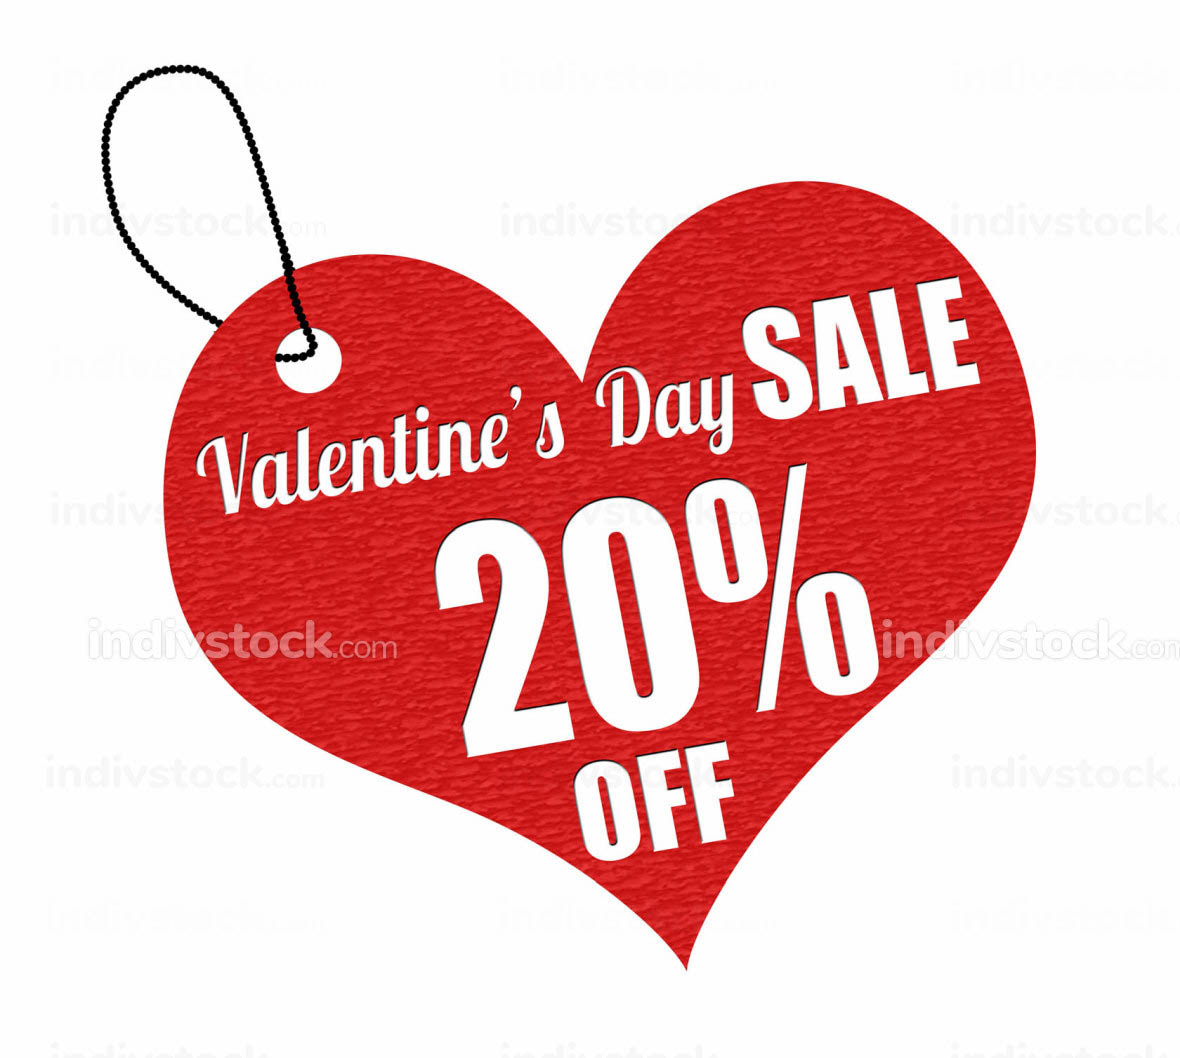 Valentines sale 20 percent off label or price tag